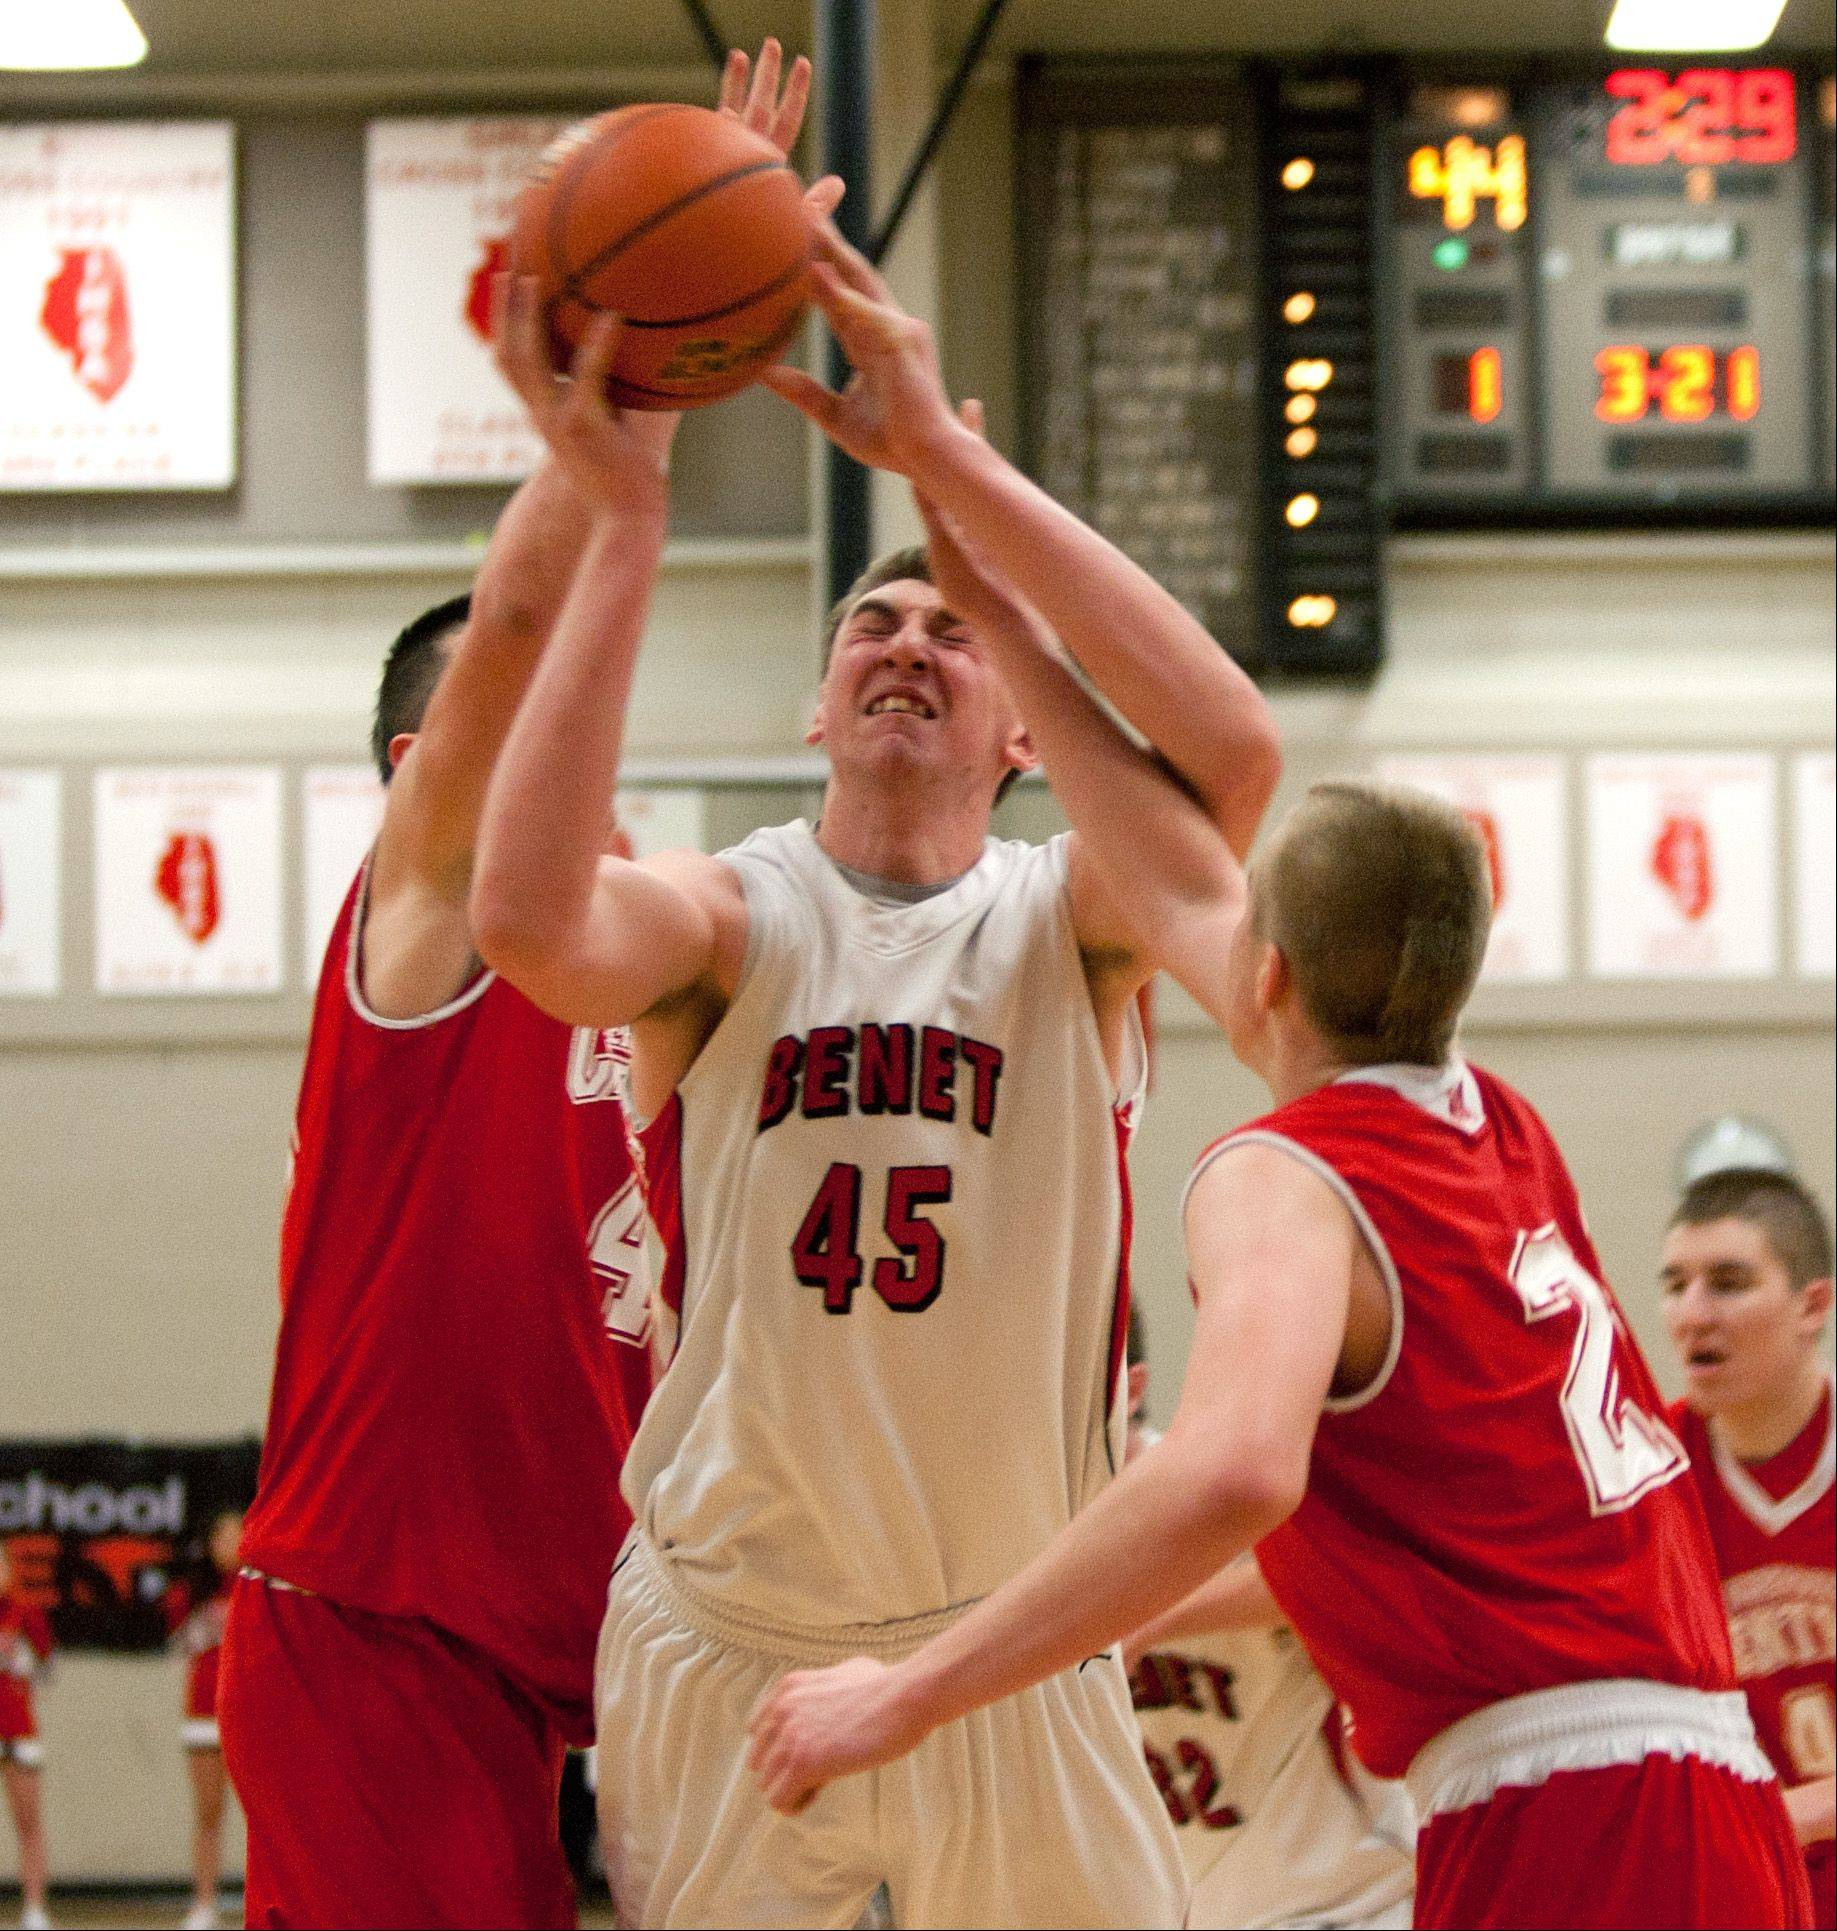 Benet's Sean O'Mara drives to the basket during regional action in Lisle.